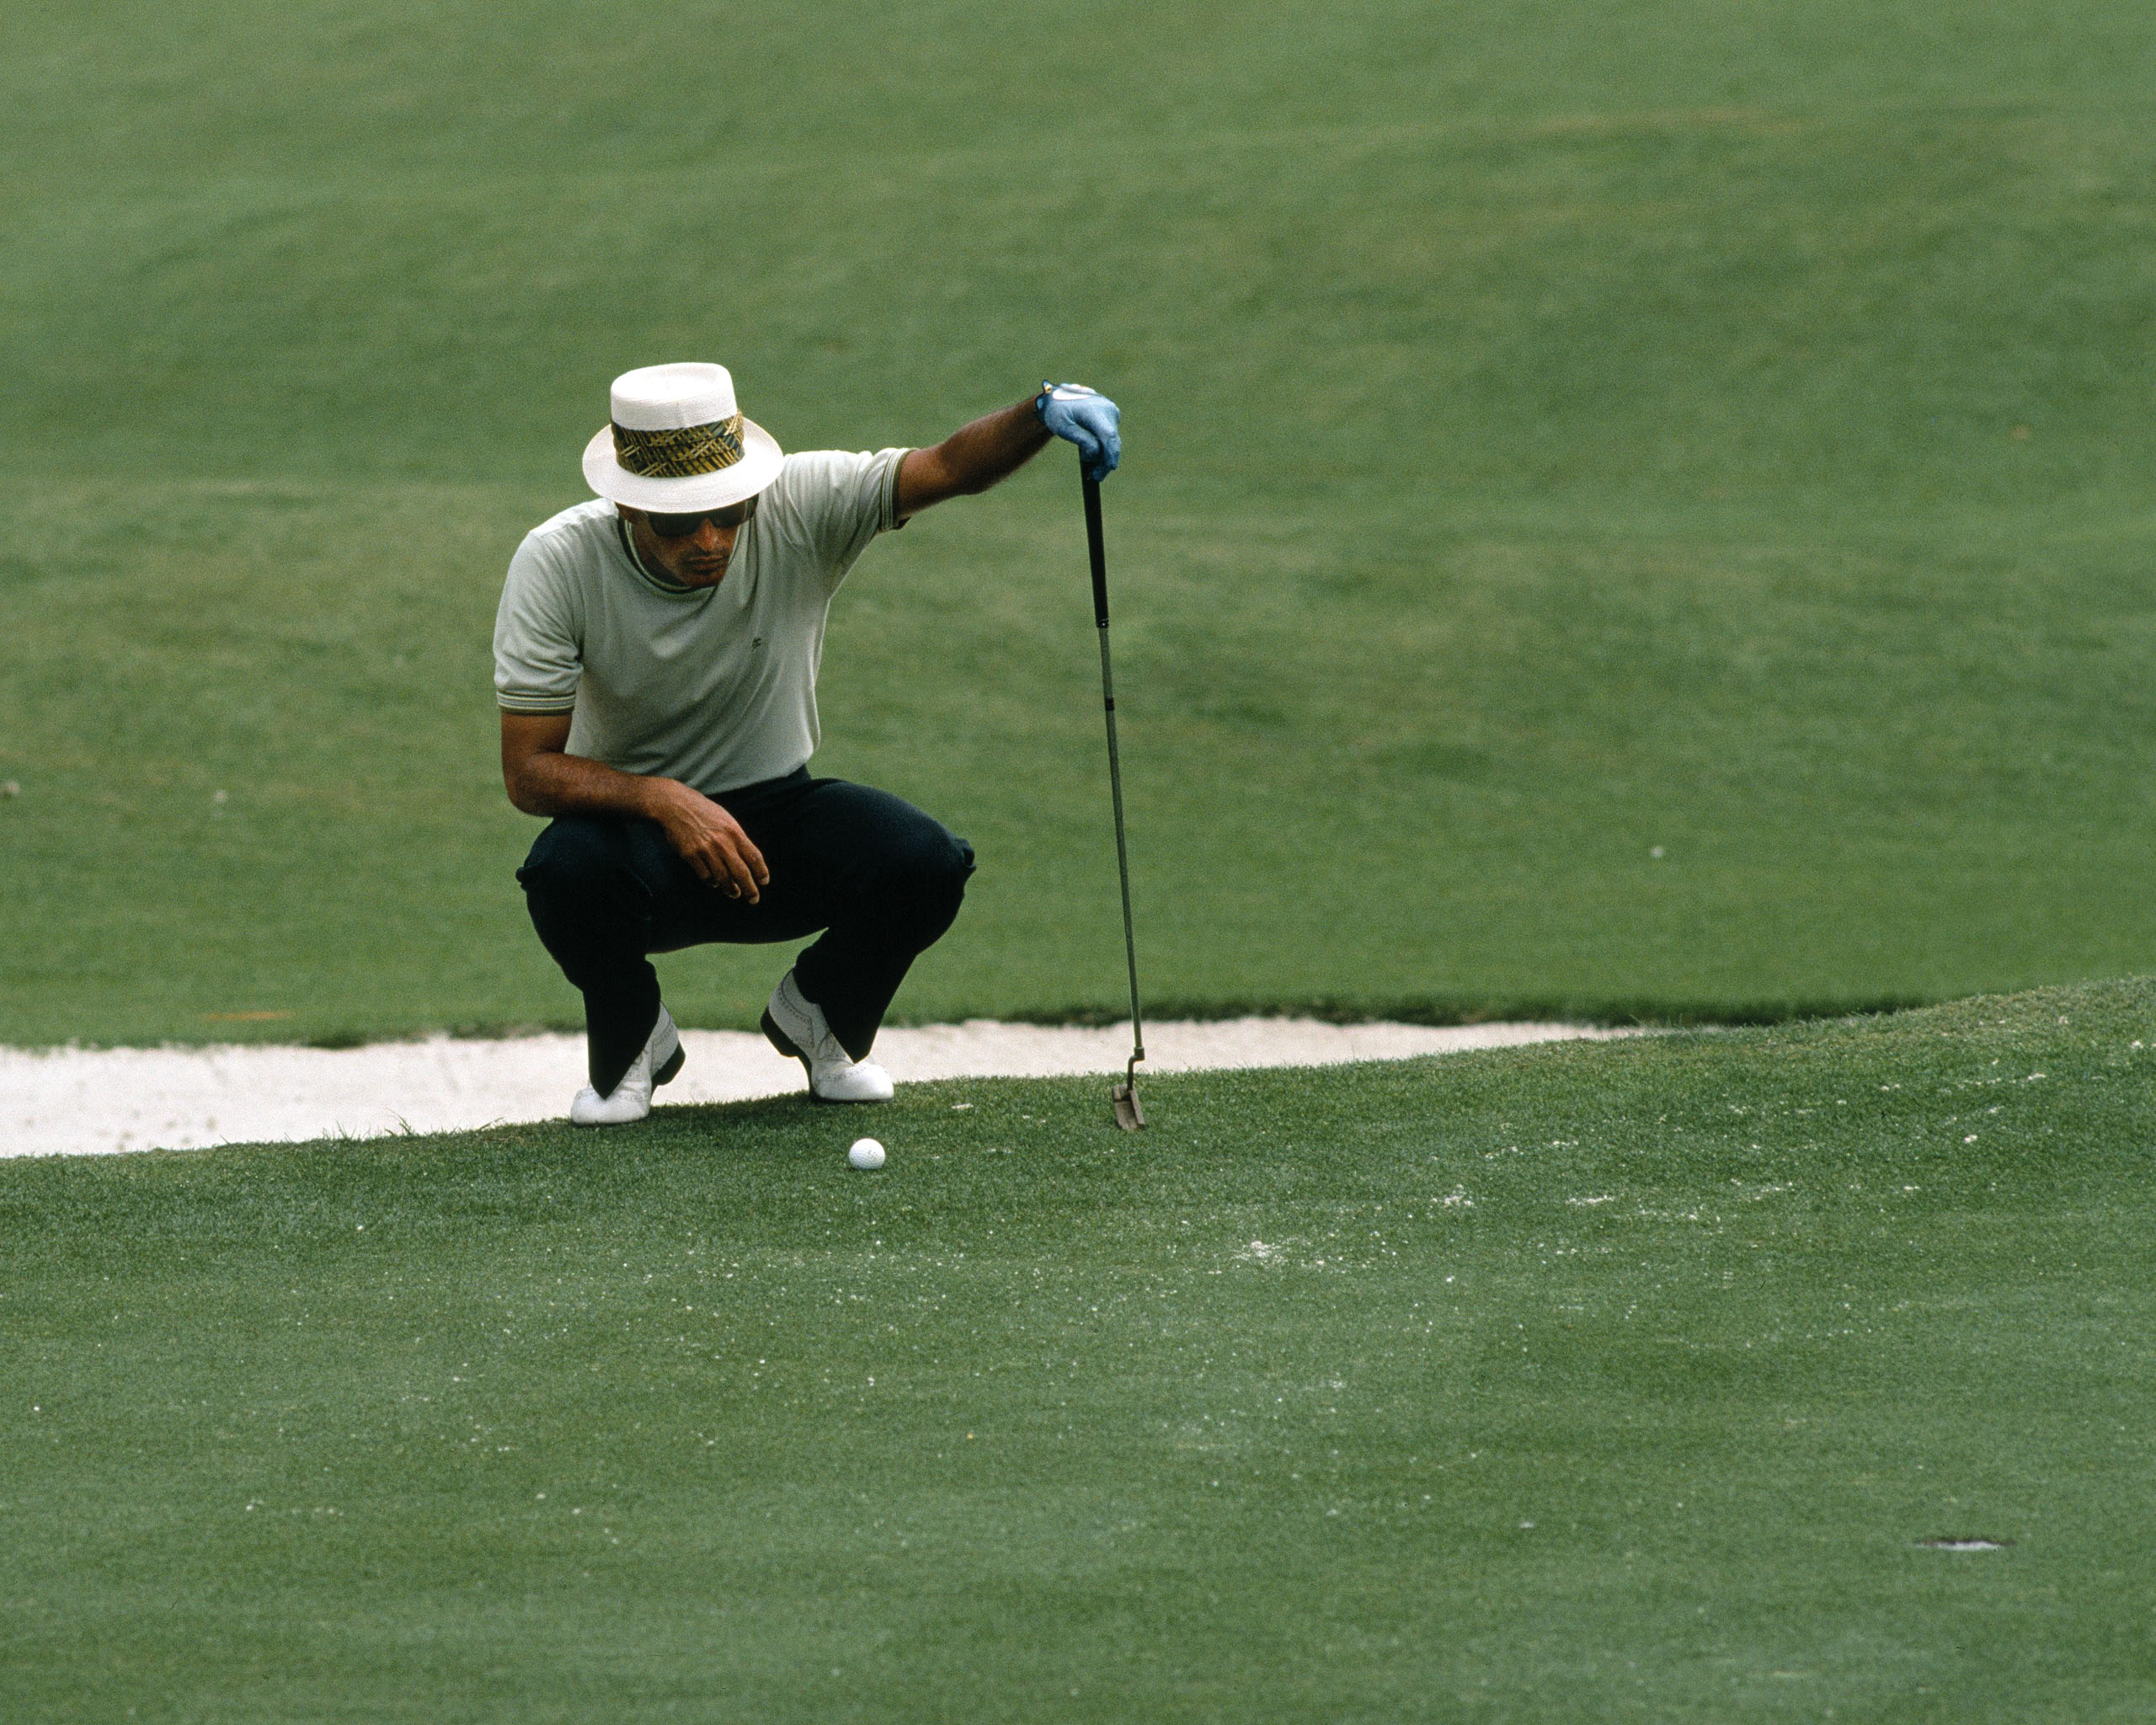 PGA Golfer Chi Chi Rodriguez. (Photo by Augusta National/Getty Images)